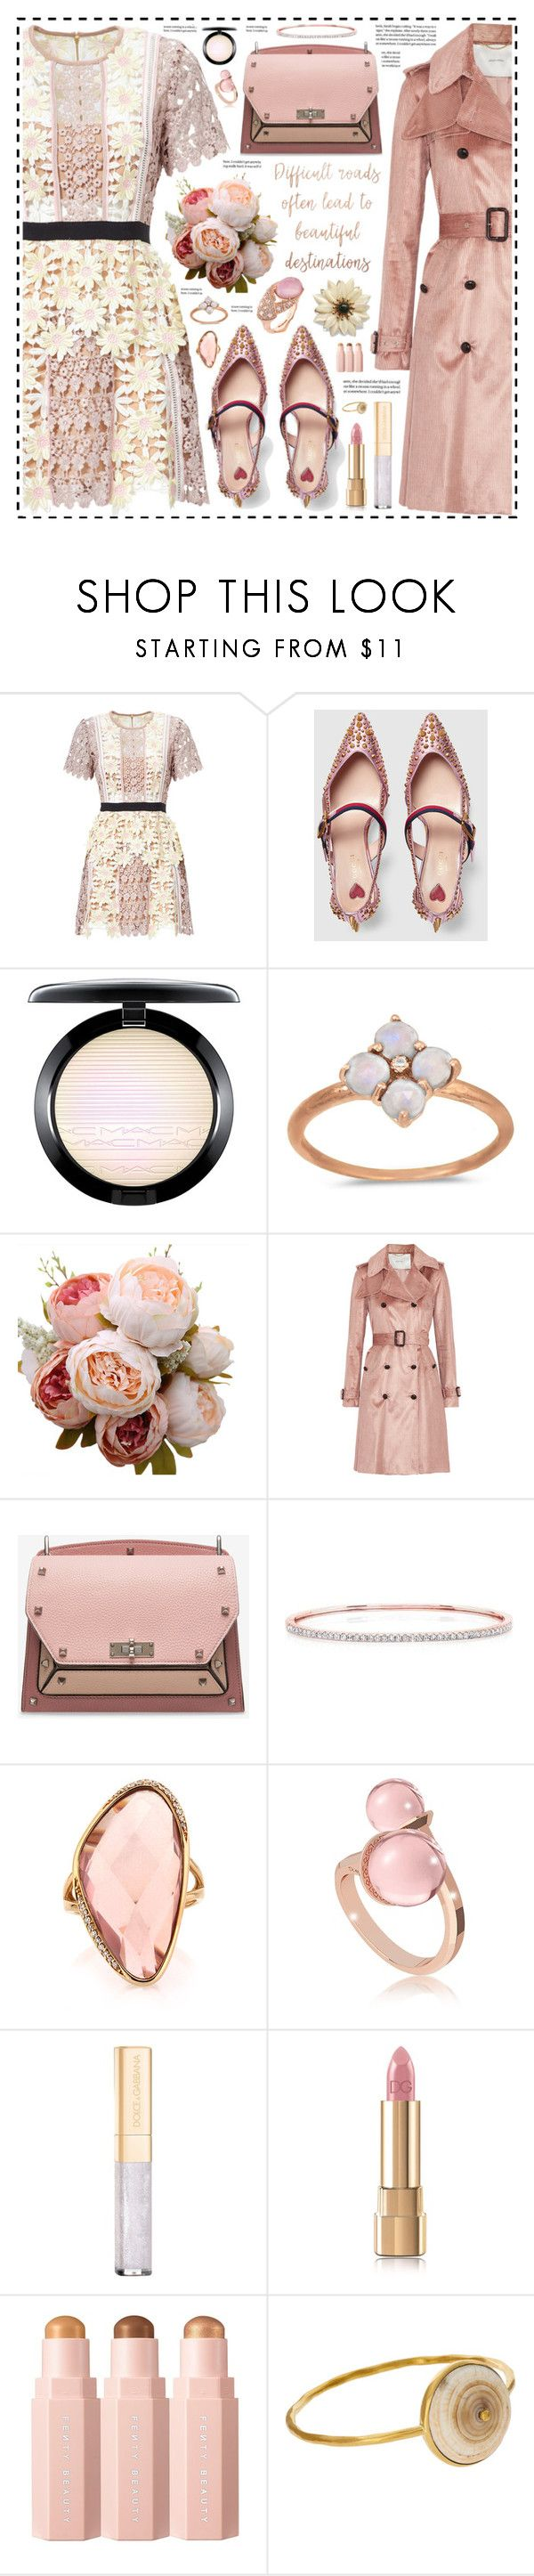 """""""Beautiful Destination!"""" by hennie-henne ❤ liked on Polyvore featuring Gucci, MAC Cosmetics, BillyTheTree, ADAM, Bally, Mark Broumand, Rebecca, Dolce&Gabbana and Mirabelle"""